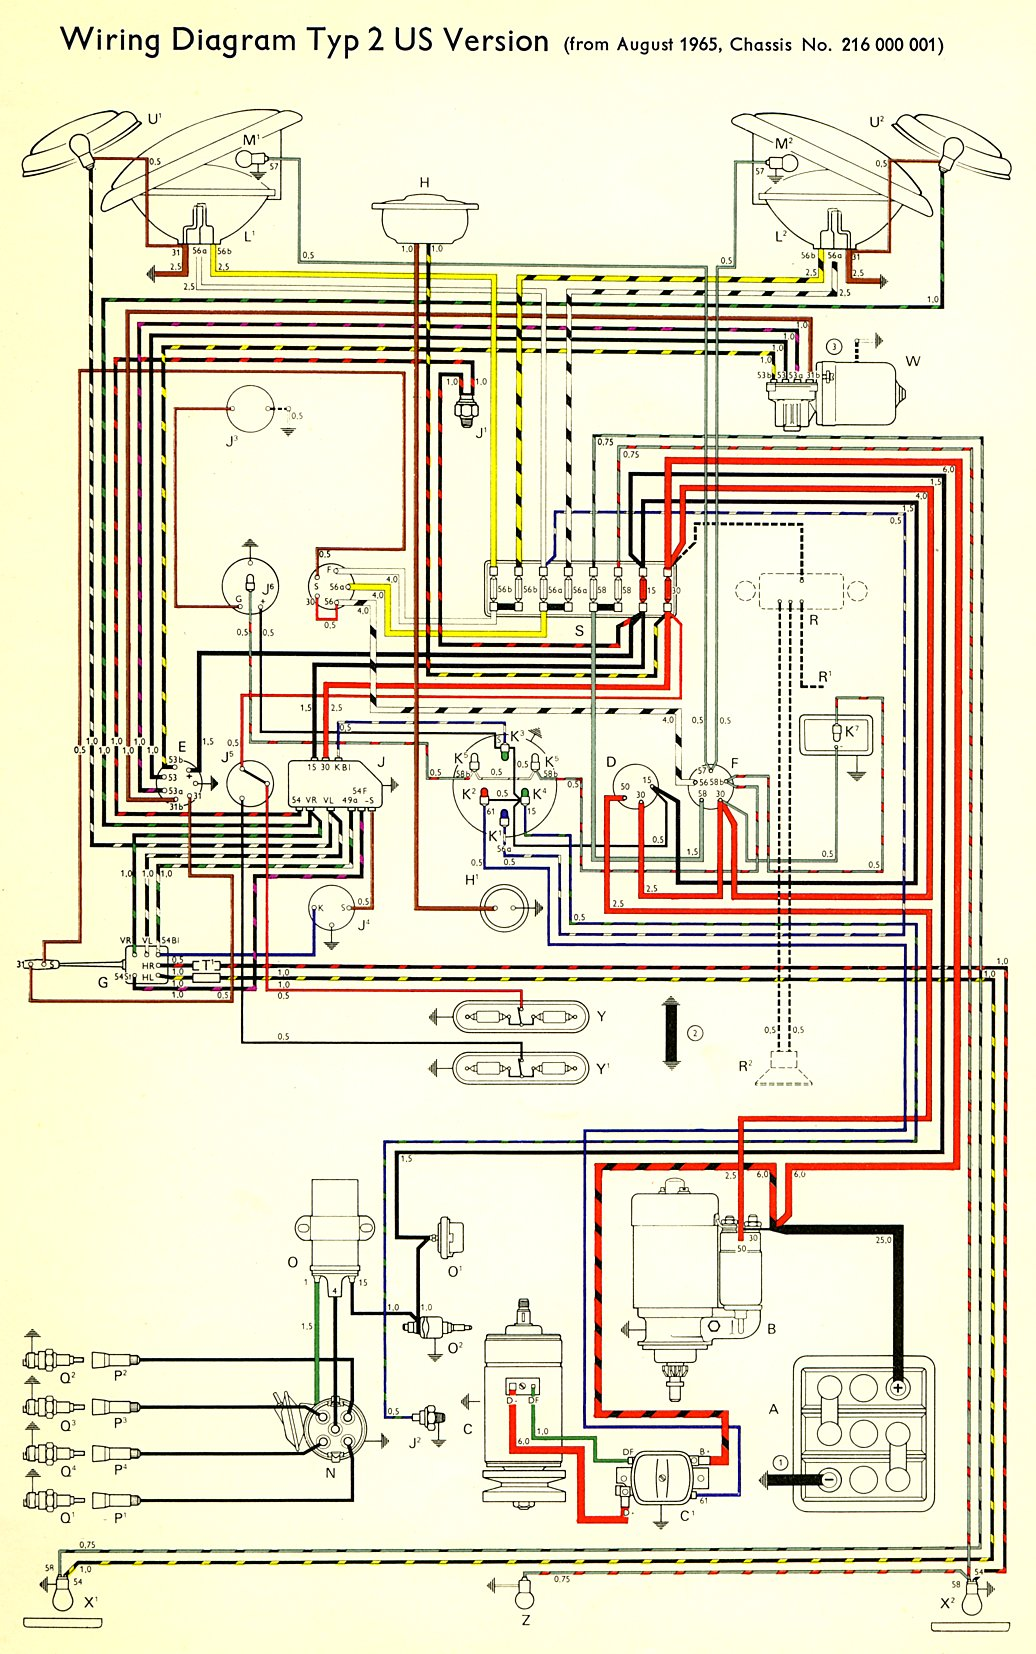 1967 Vw Radio Wiring Diagram Data Wiring Schema 1966 Mustang Dash Wiring  1966 Mustang Color Wiring Diagram